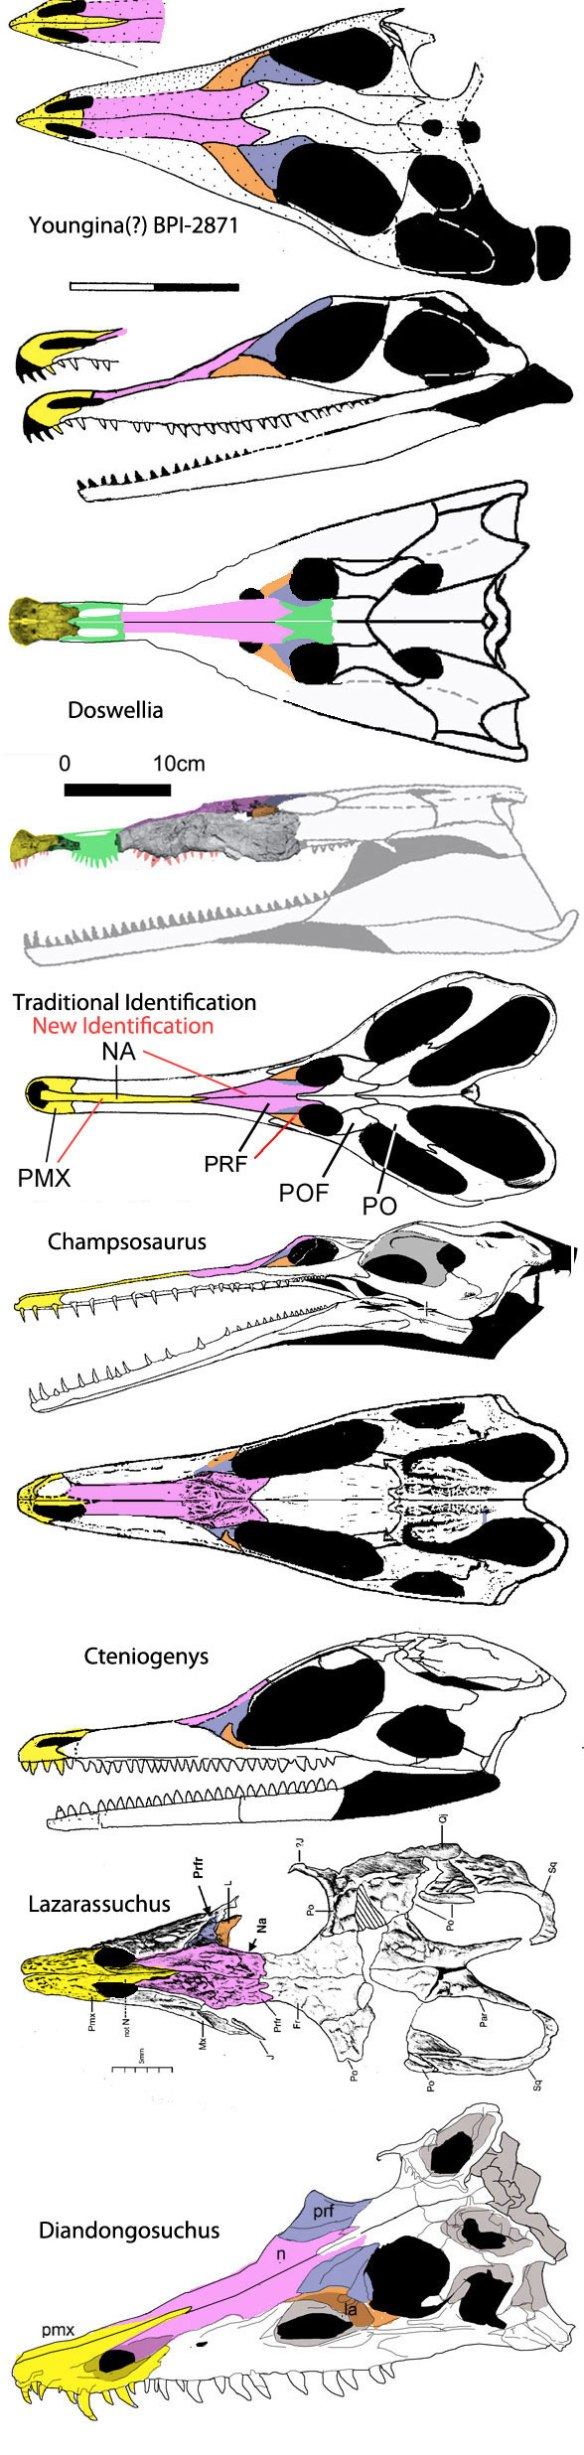 Figure 2. Various choristoderes and their kin with a focus on the bones surrounding the naris and comprising the snout.